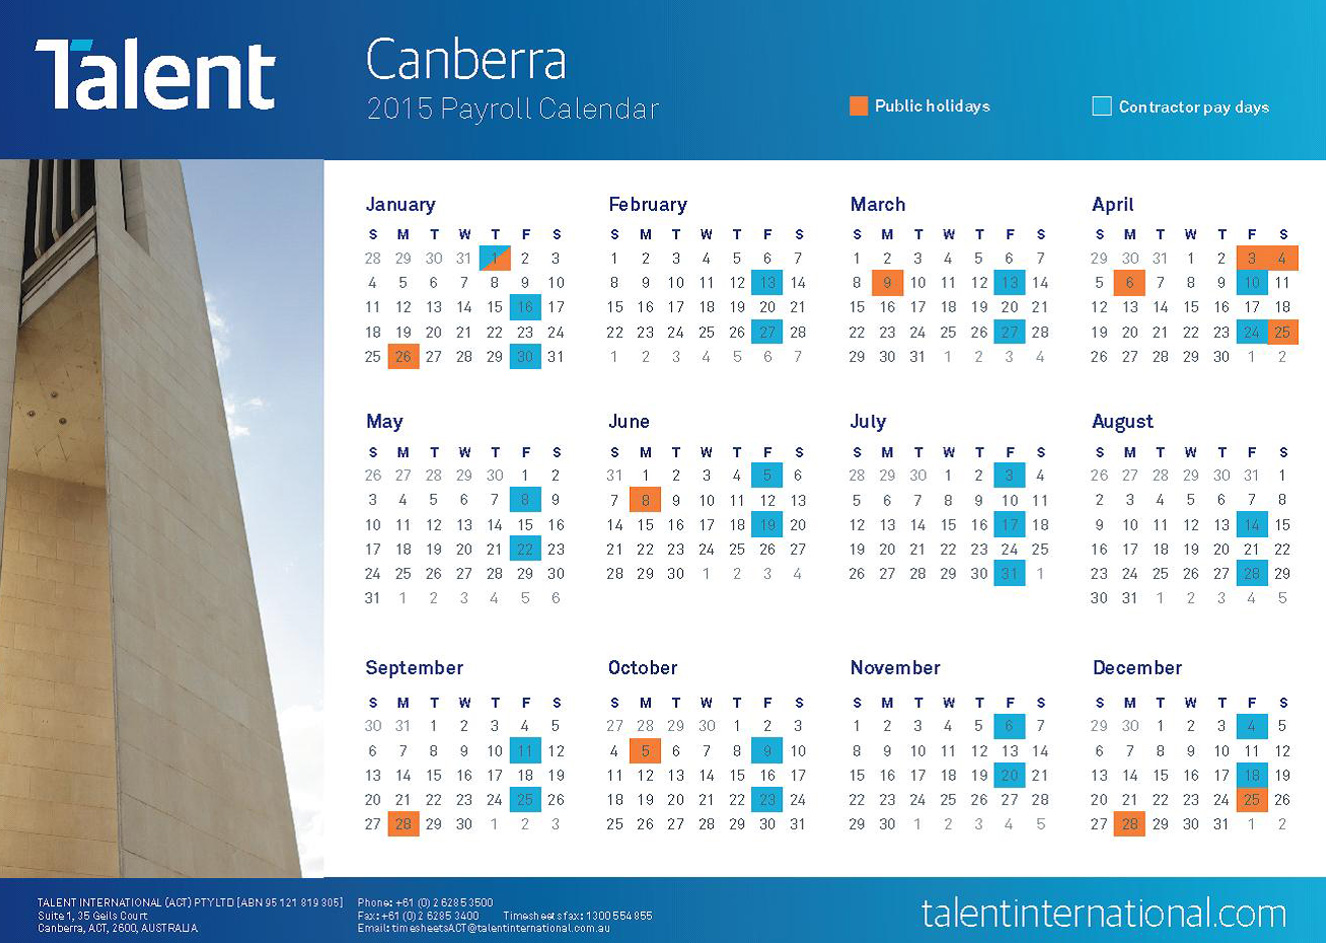 Canberra---Web-Article